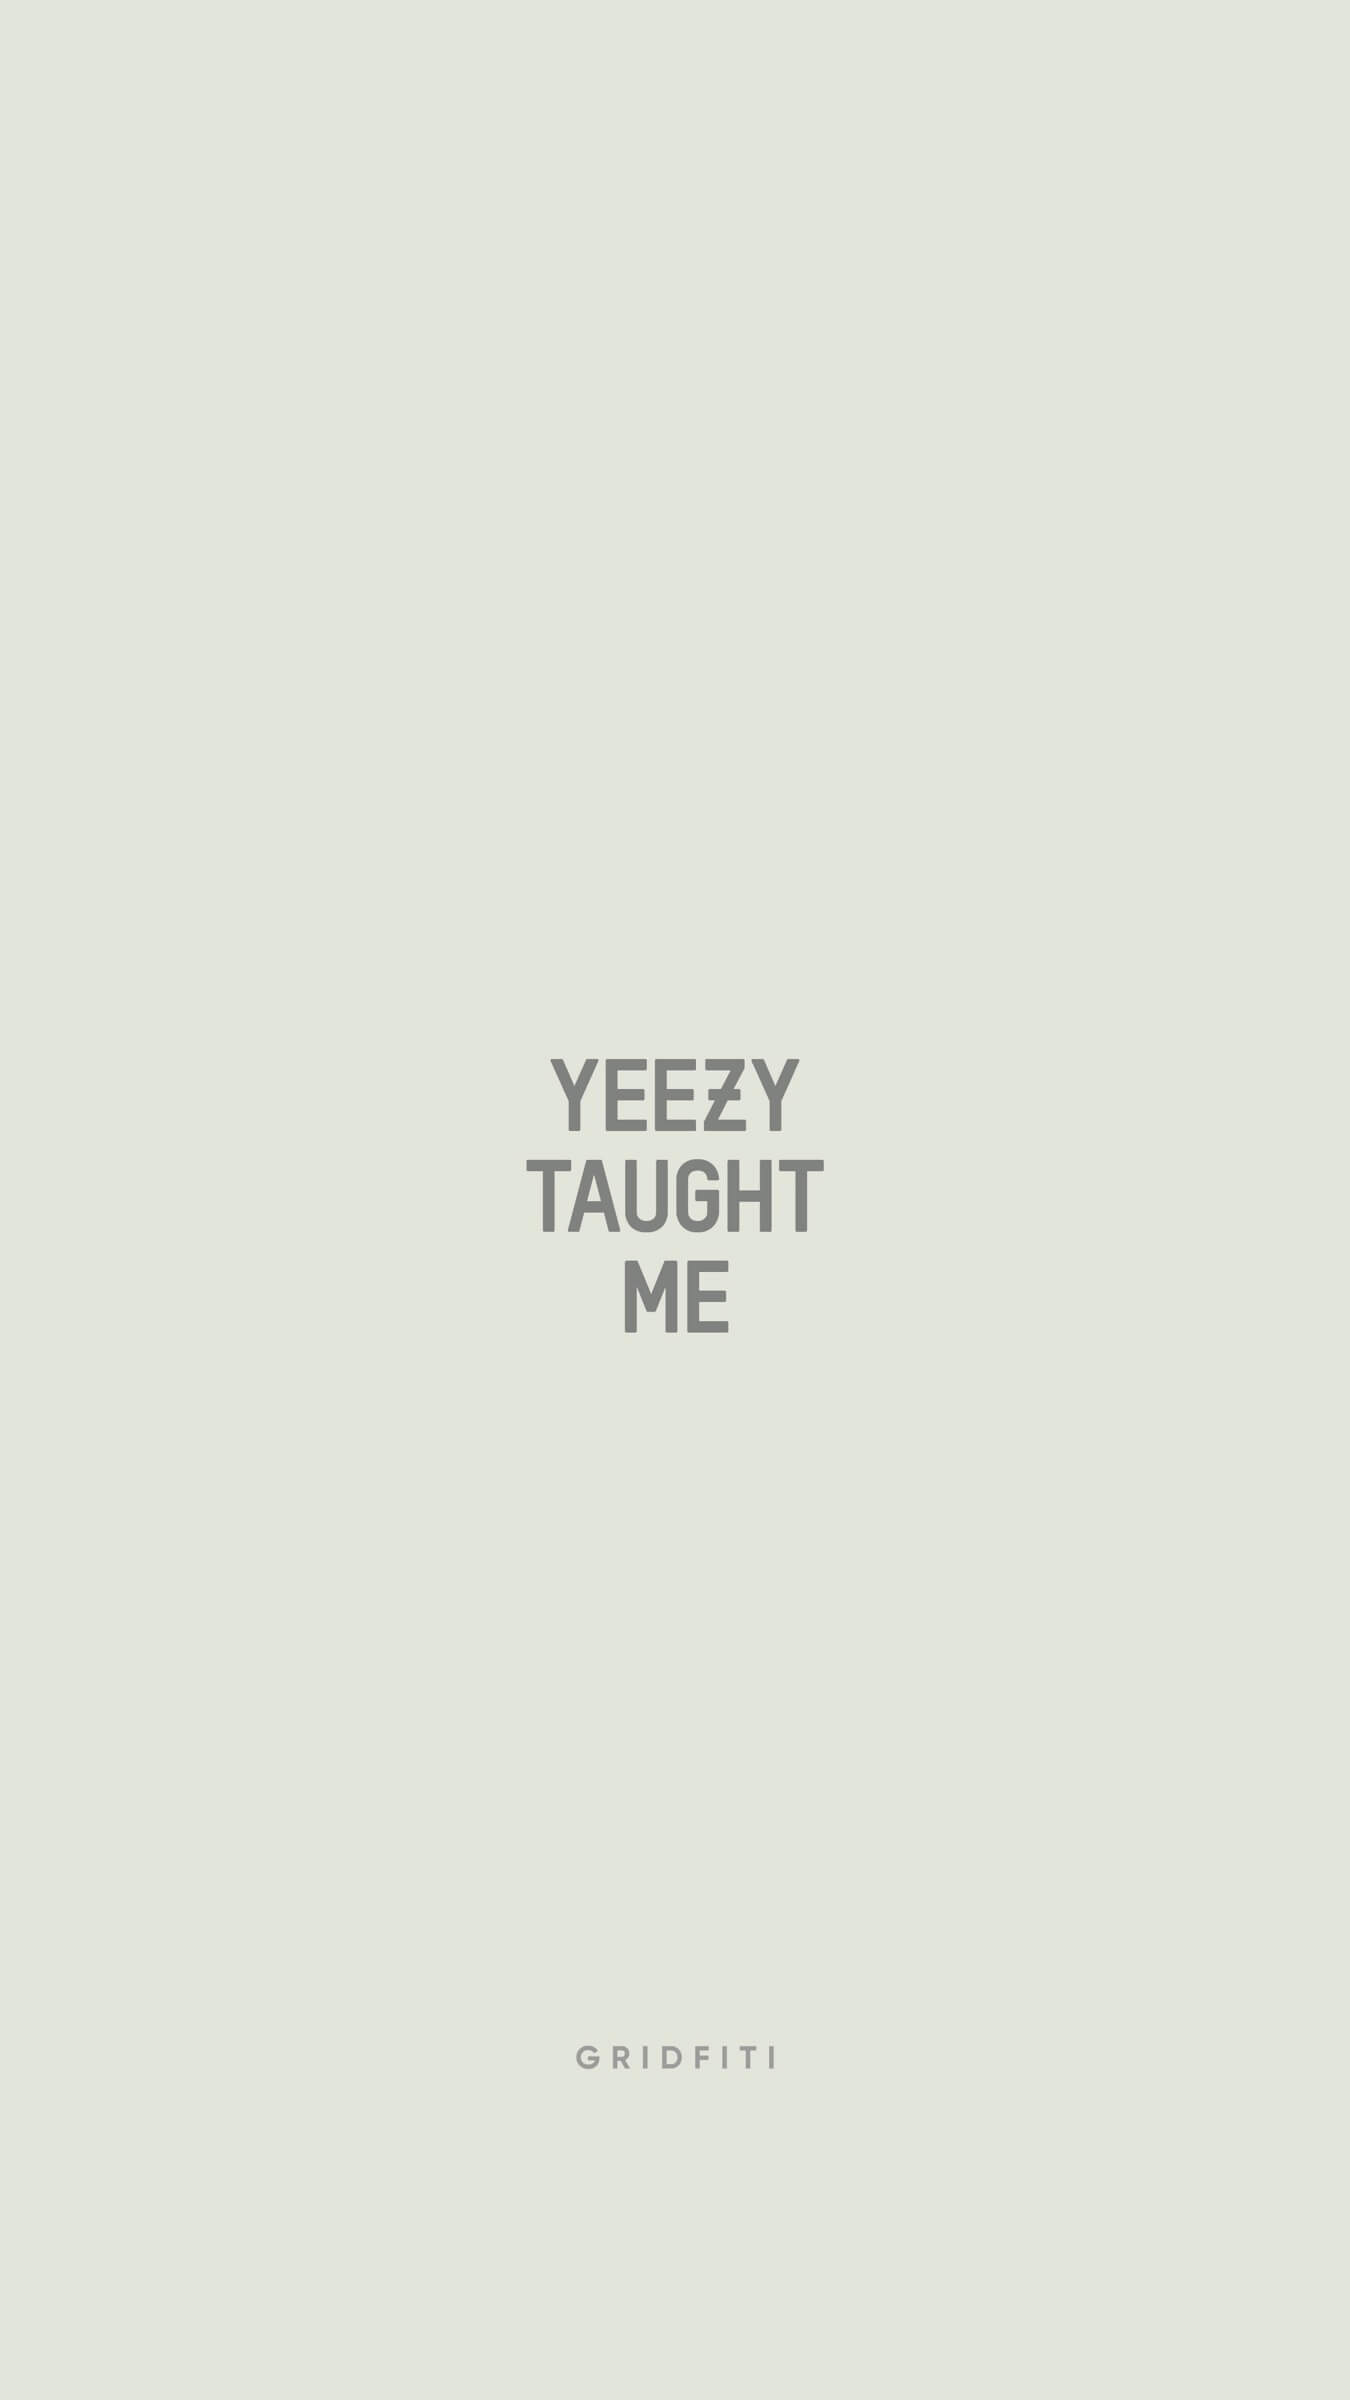 Yeezy Taught Me Quote Wallpaper - Light Mode